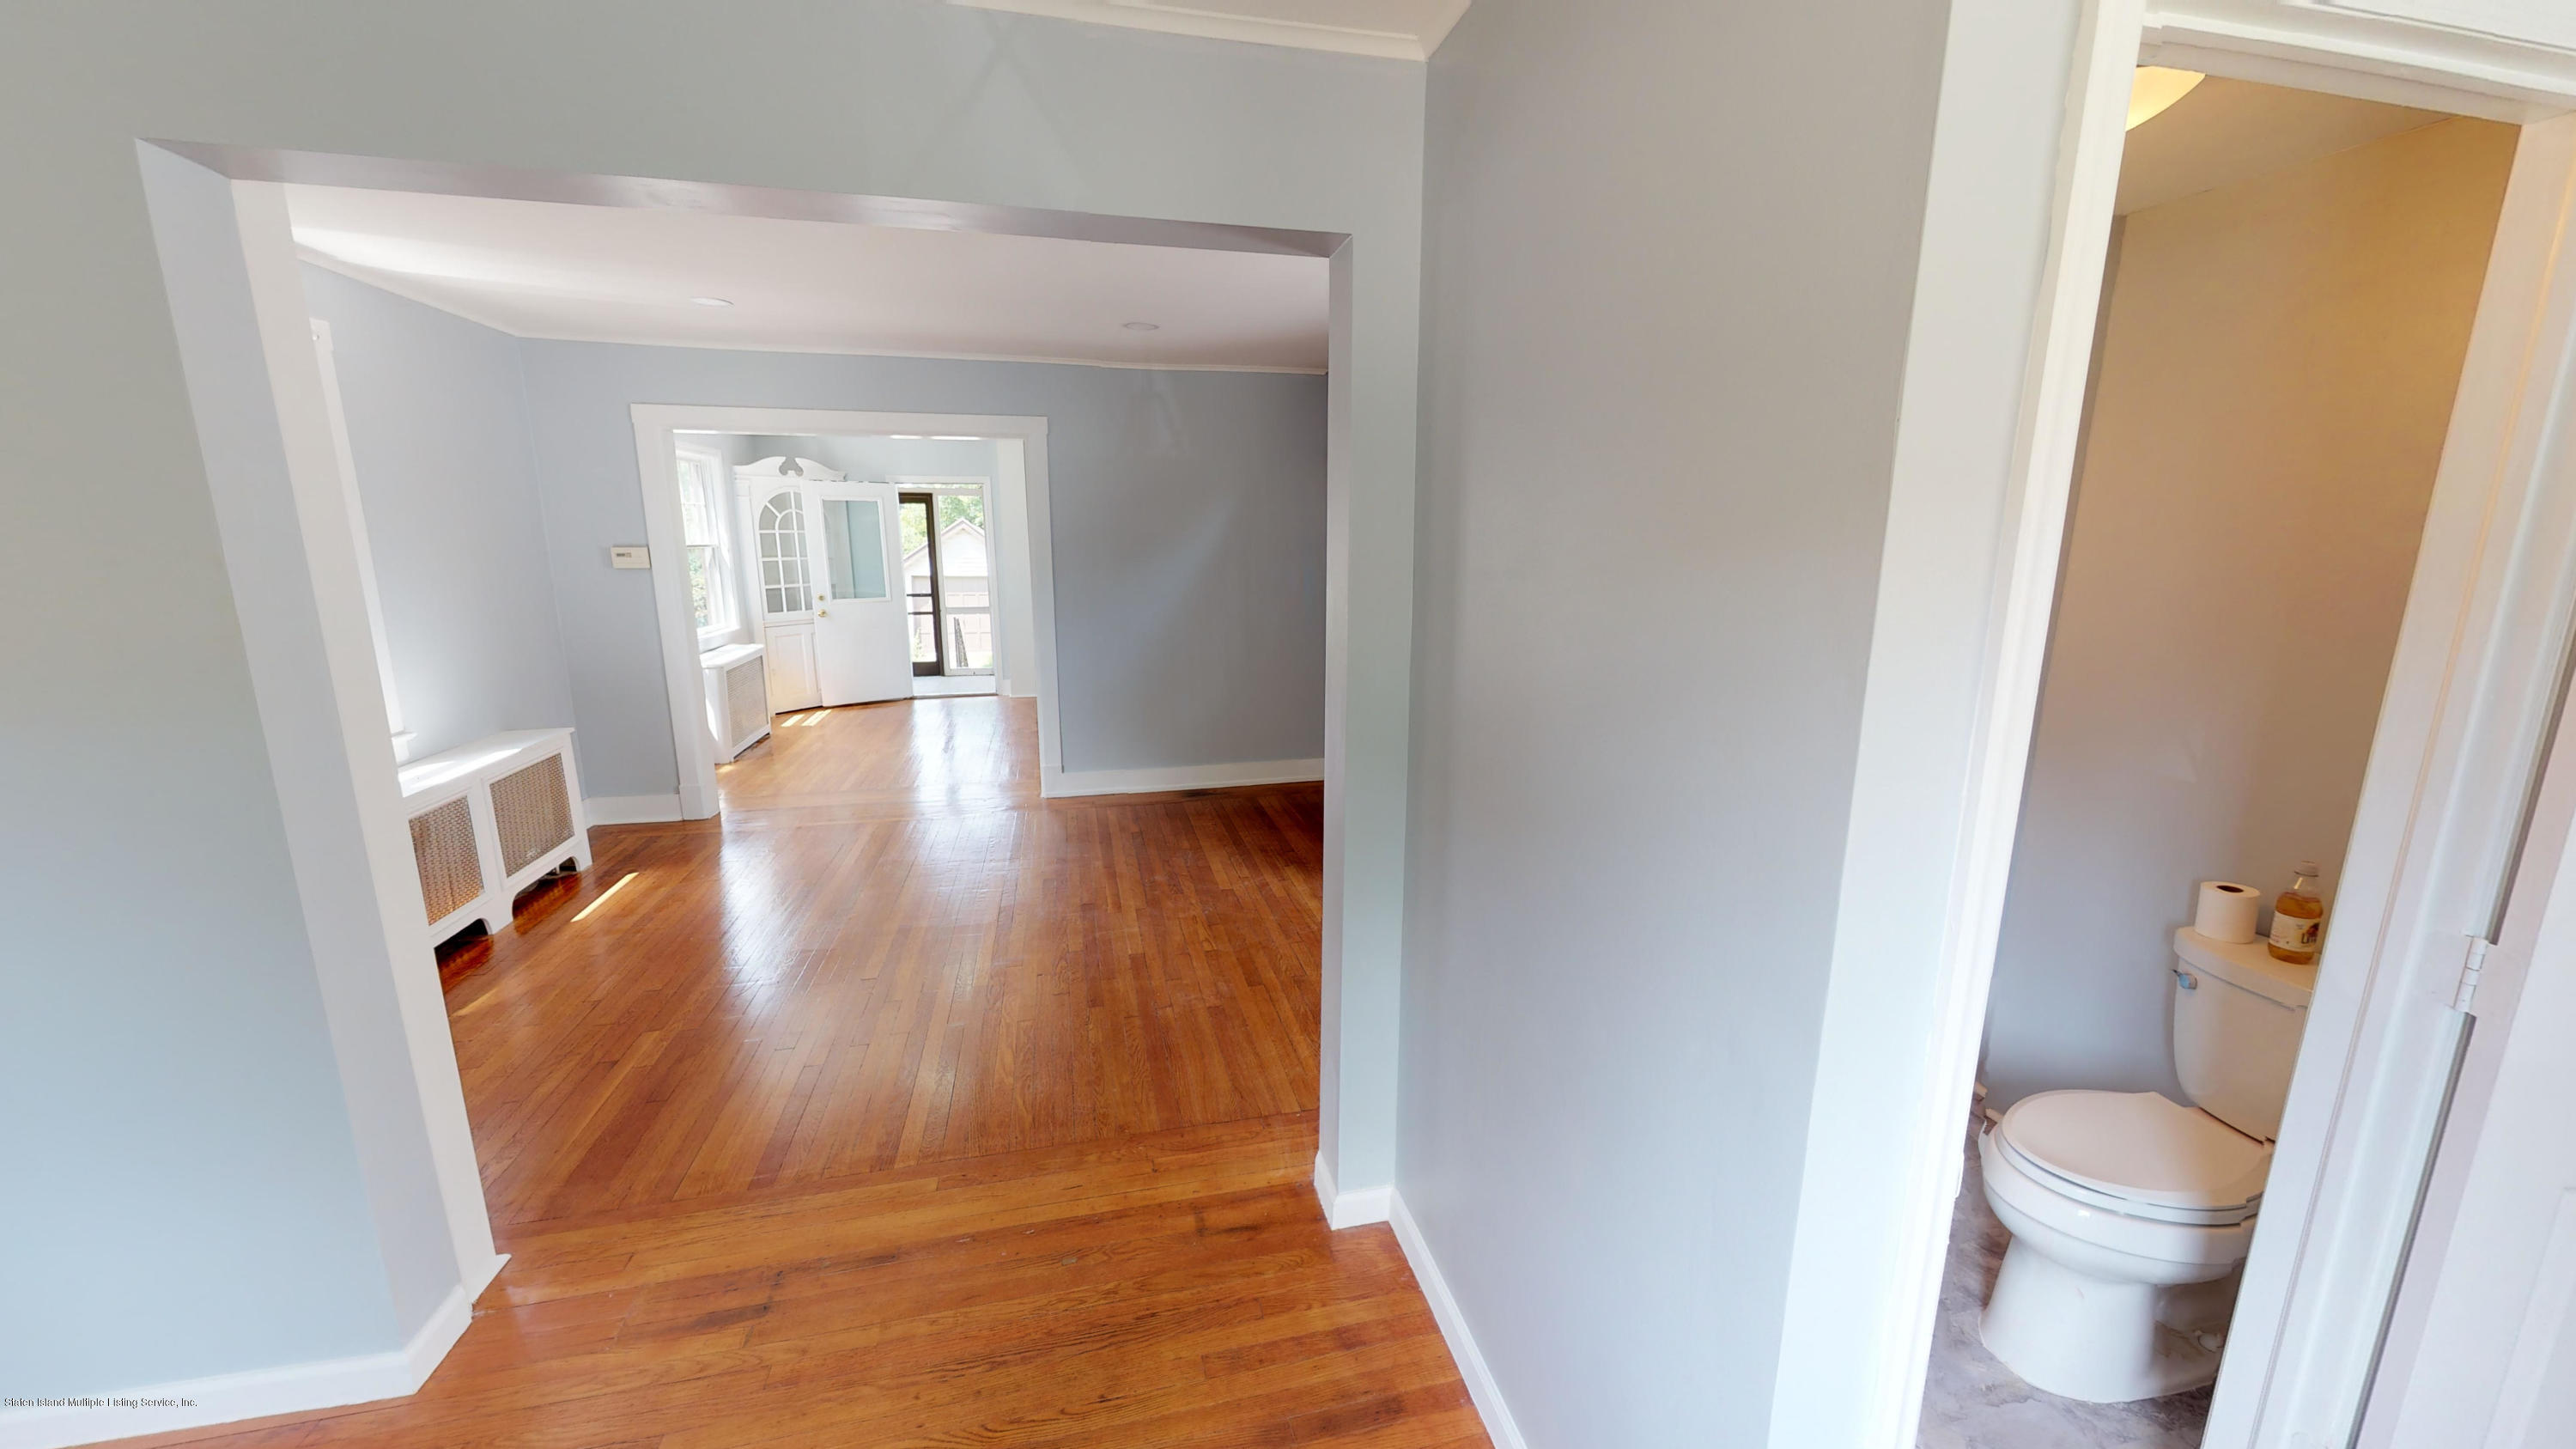 Single Family - Detached 54 Quinlan Avenue  Staten Island, NY 10314, MLS-1129378-10